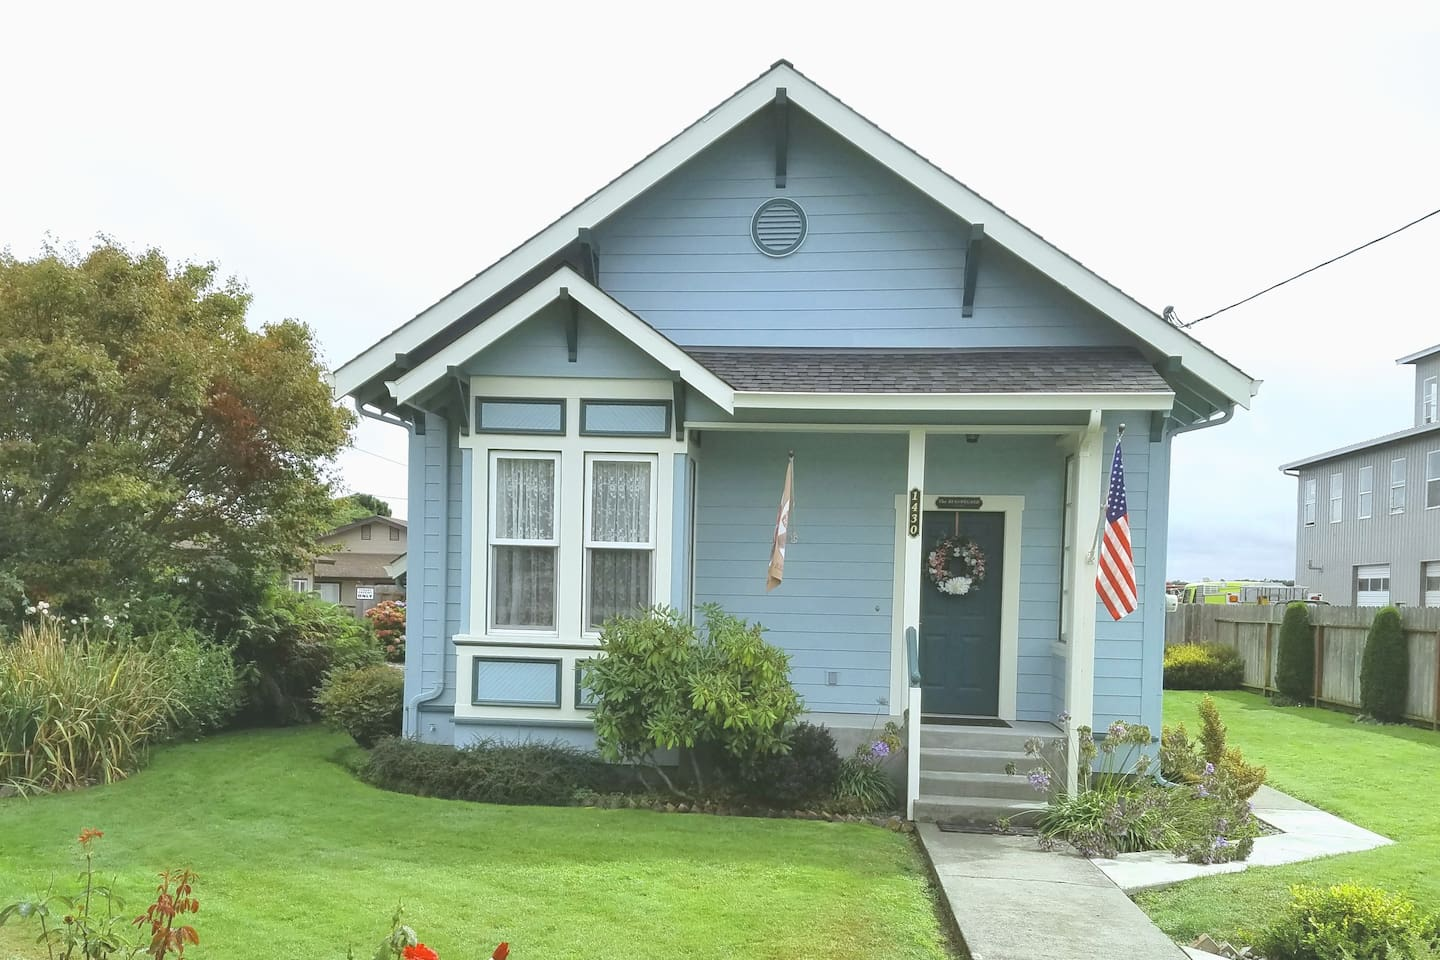 Front of house with flag